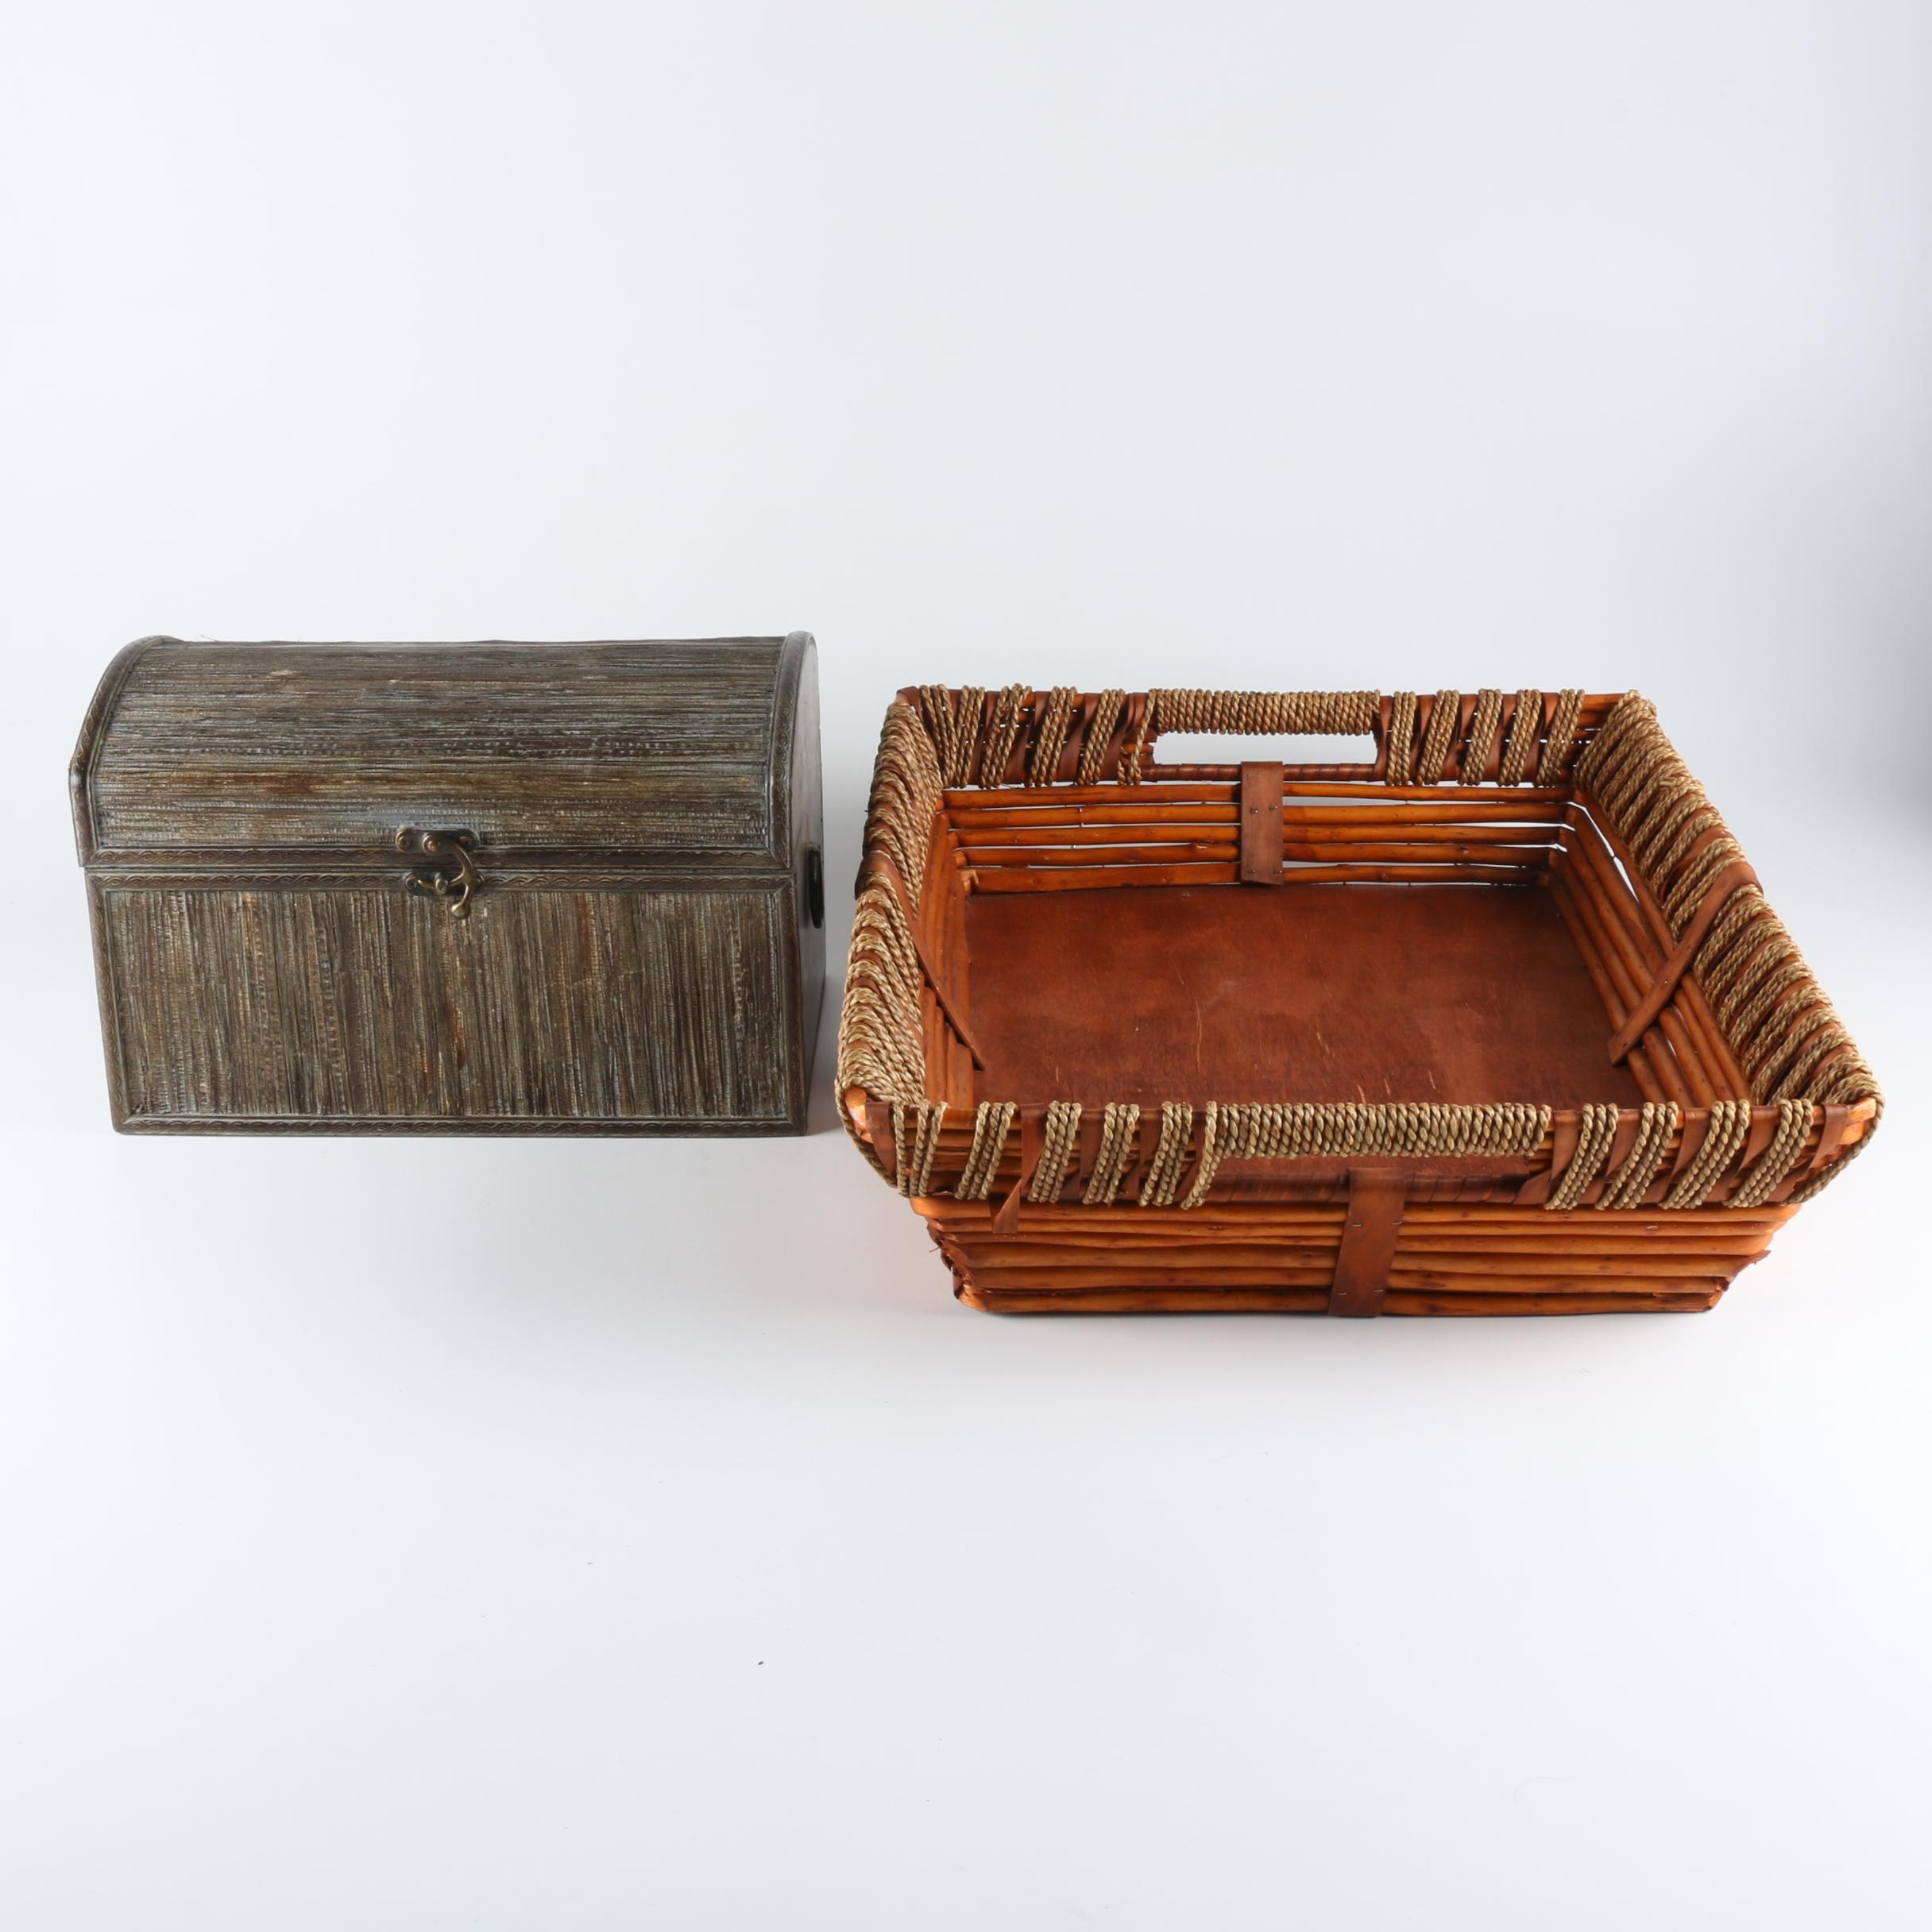 Decorative Chest and Woven Tray